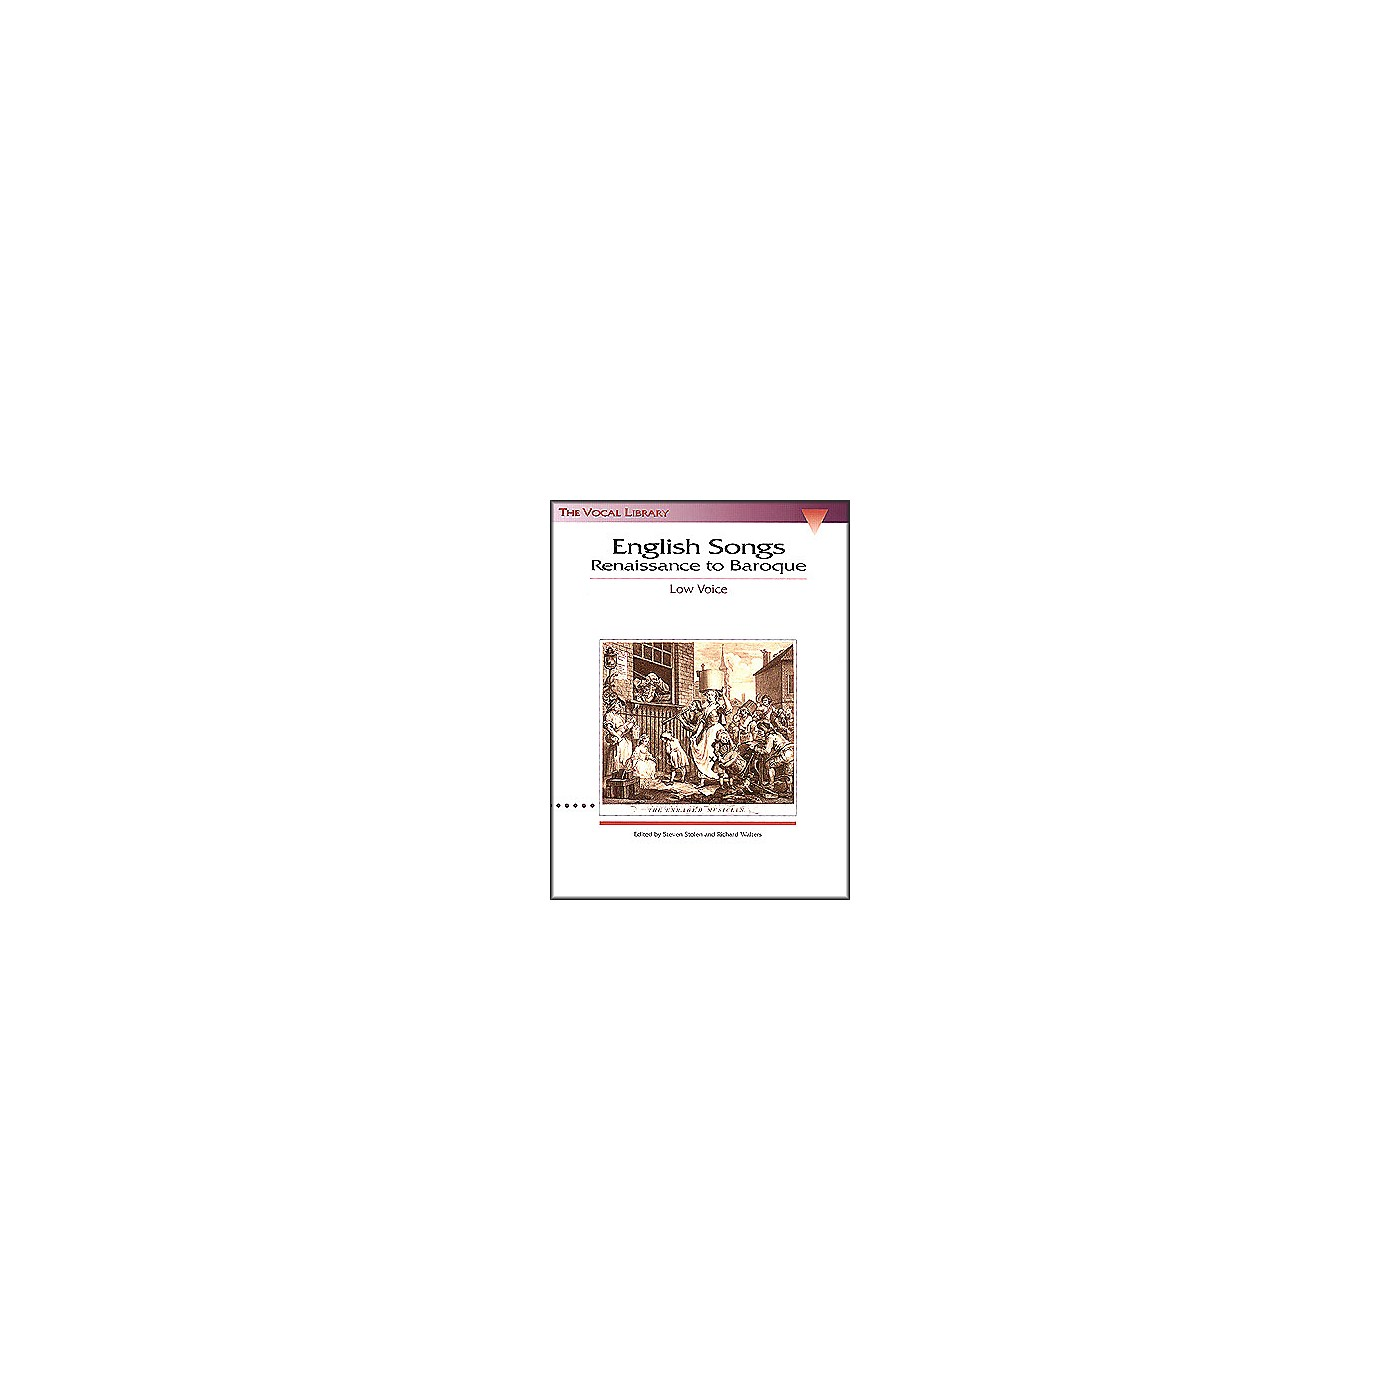 Hal Leonard English Songs - Renaissance To Baroque for Low Voice (The Vocal Library Series) thumbnail